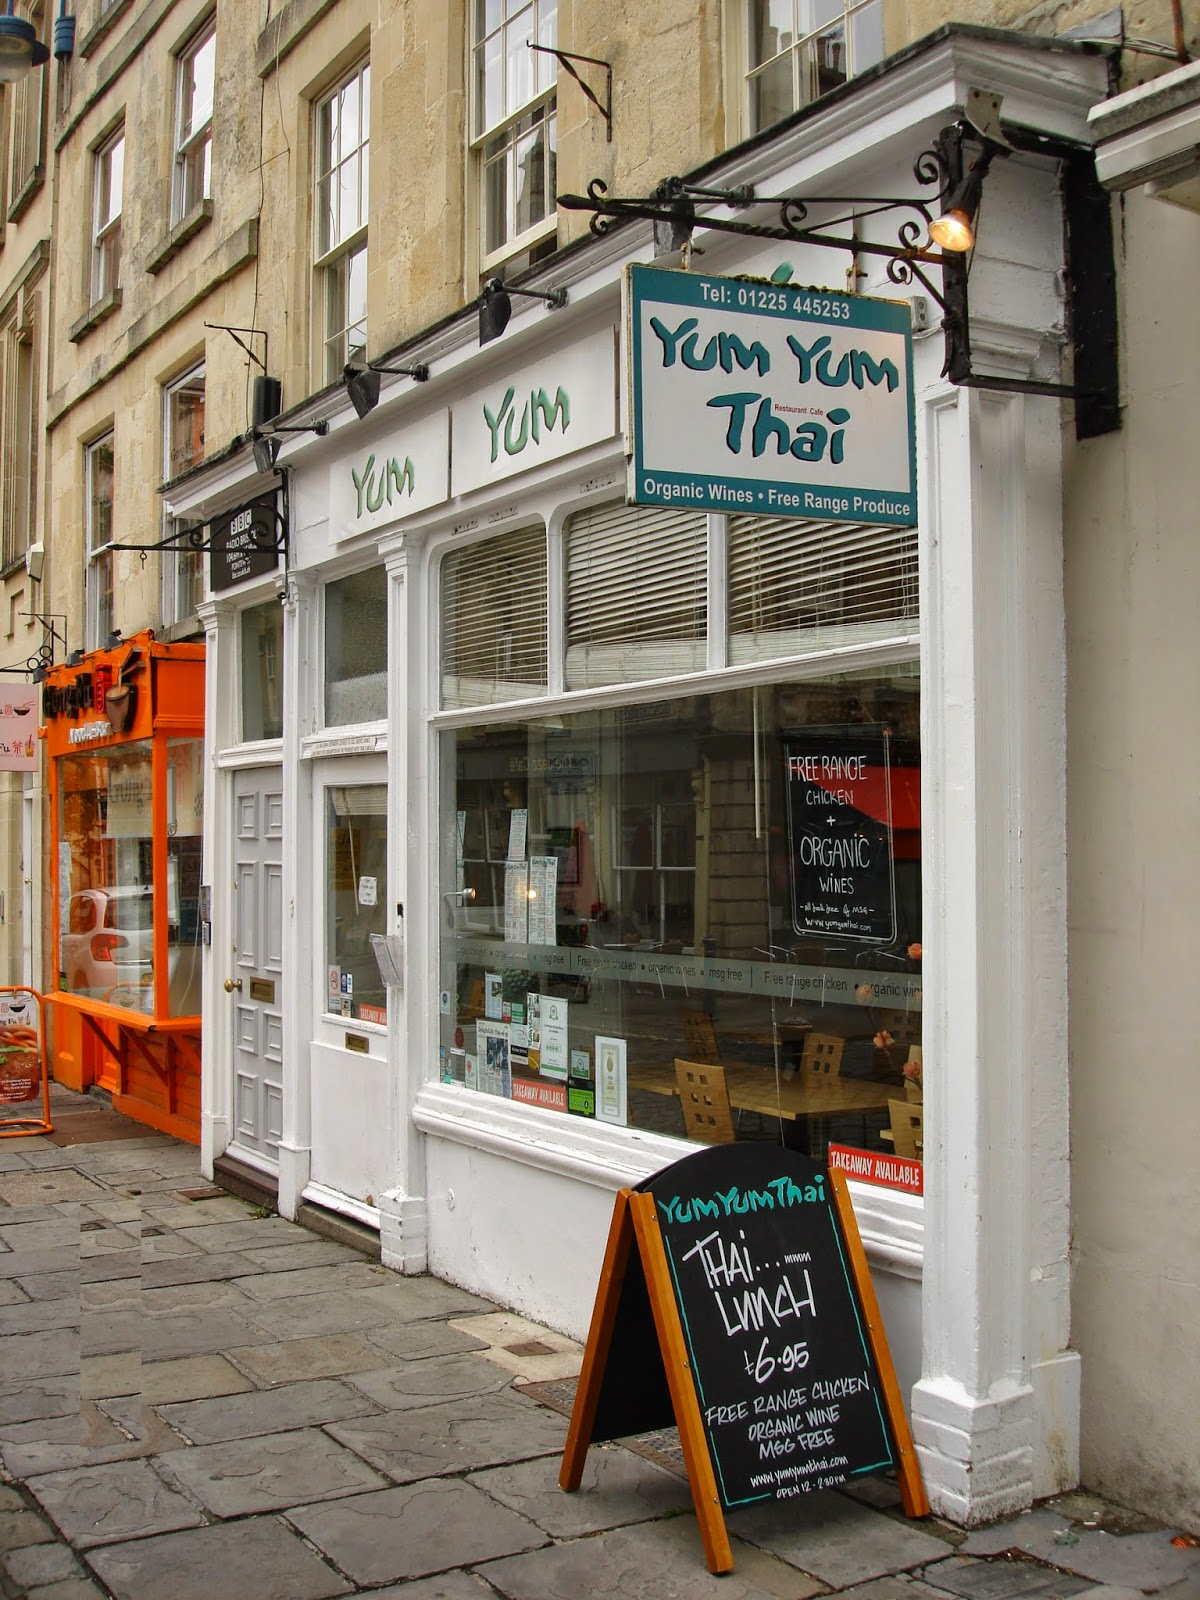 yum yum thai restaurant exterior, Bath